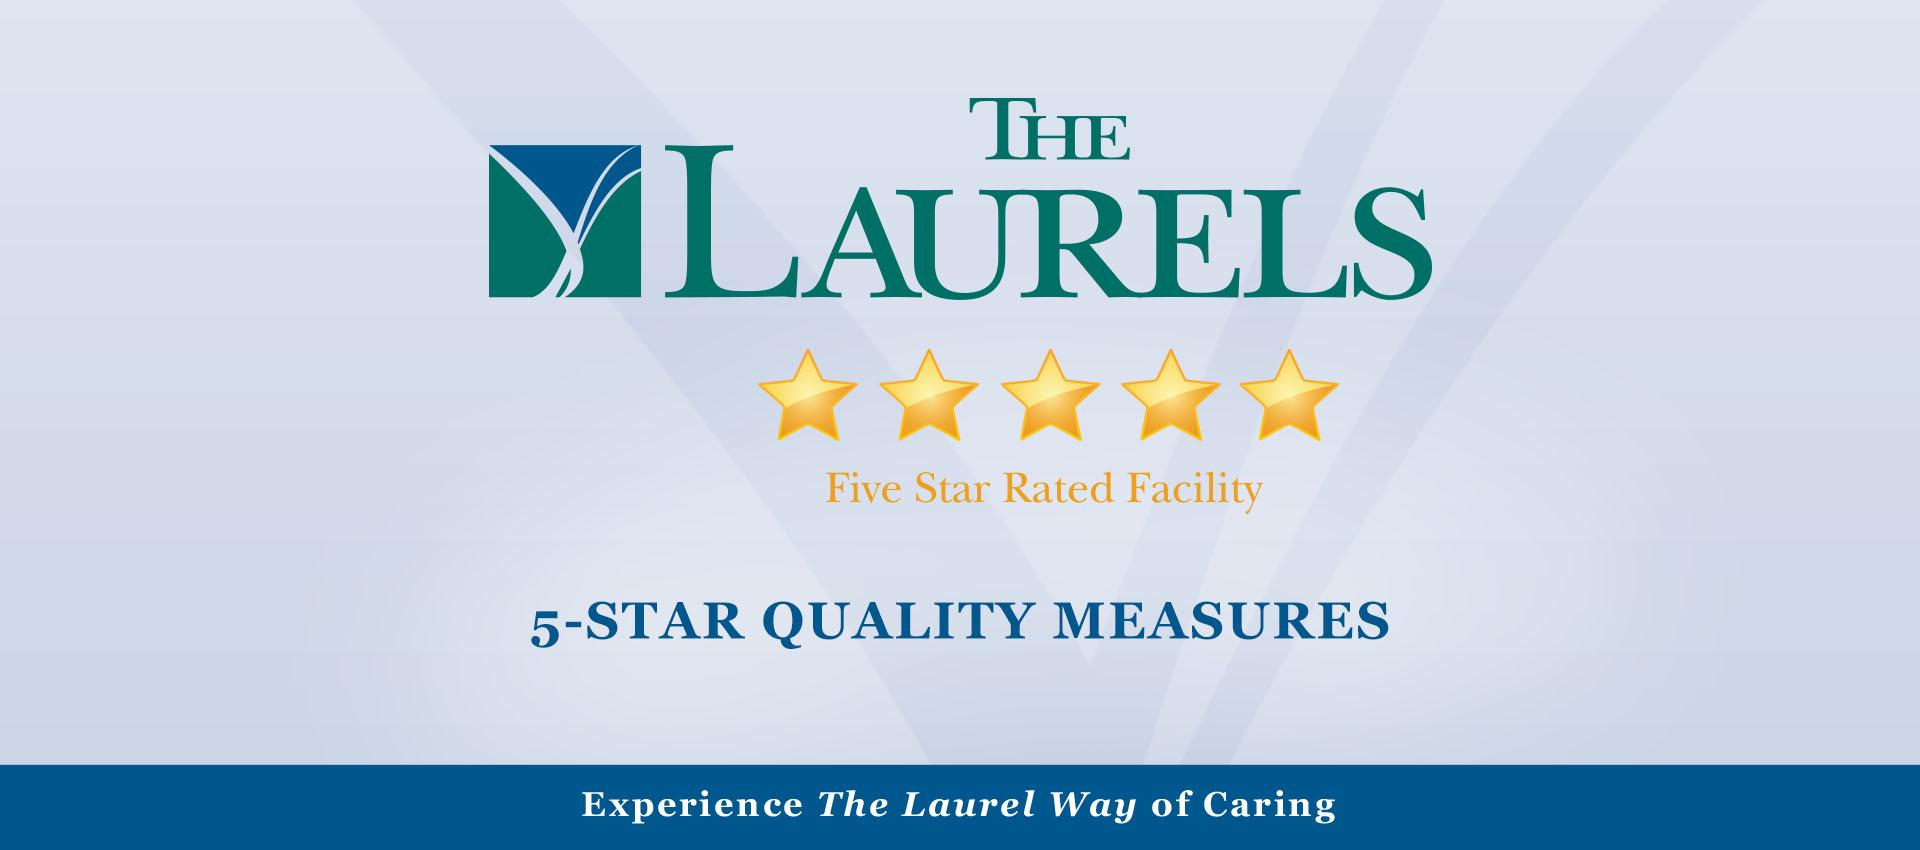 5-Star Quality Measures